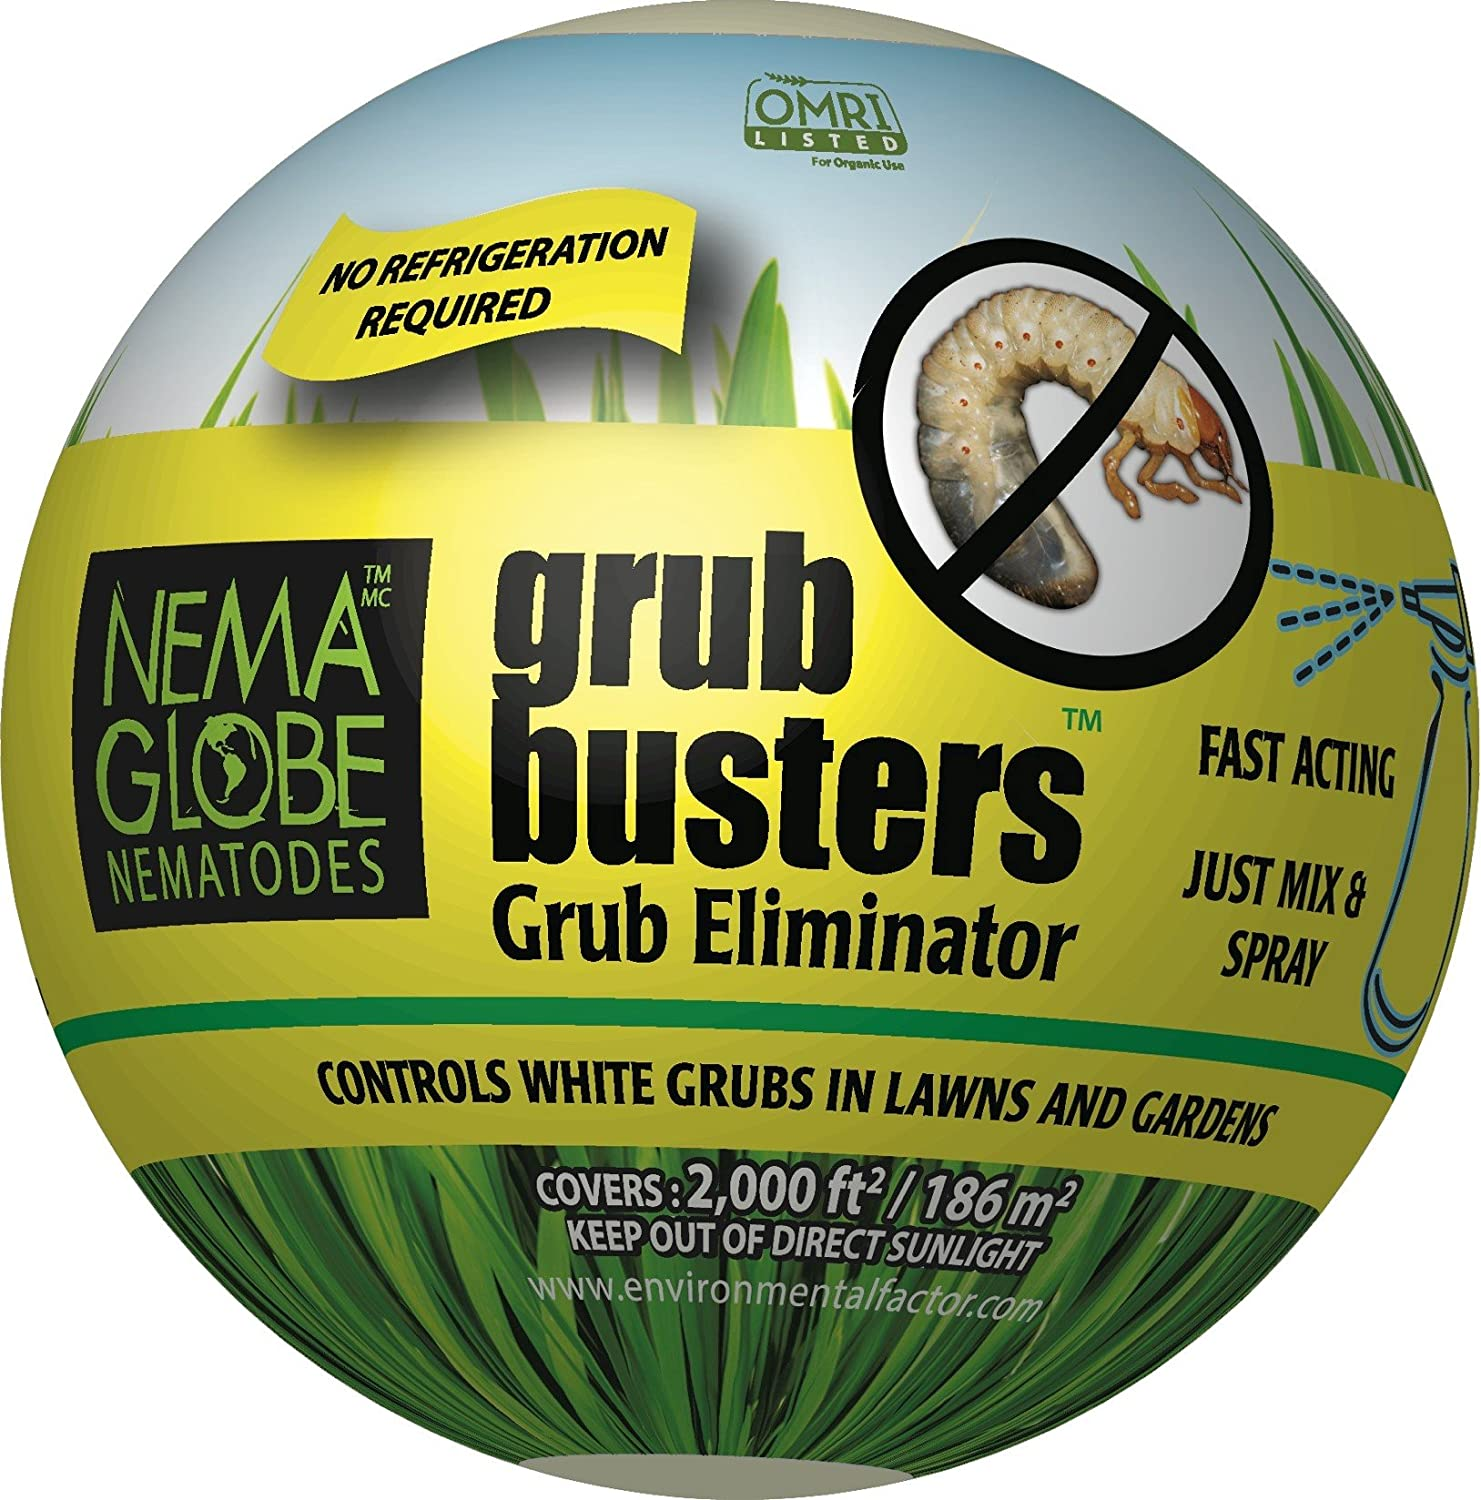 10 Million Beneficial Nematodes (H.bacteriophora) - Nema Globe Grub Buster for Pest Control - NewNo Refrigeration Required Formula 4003012